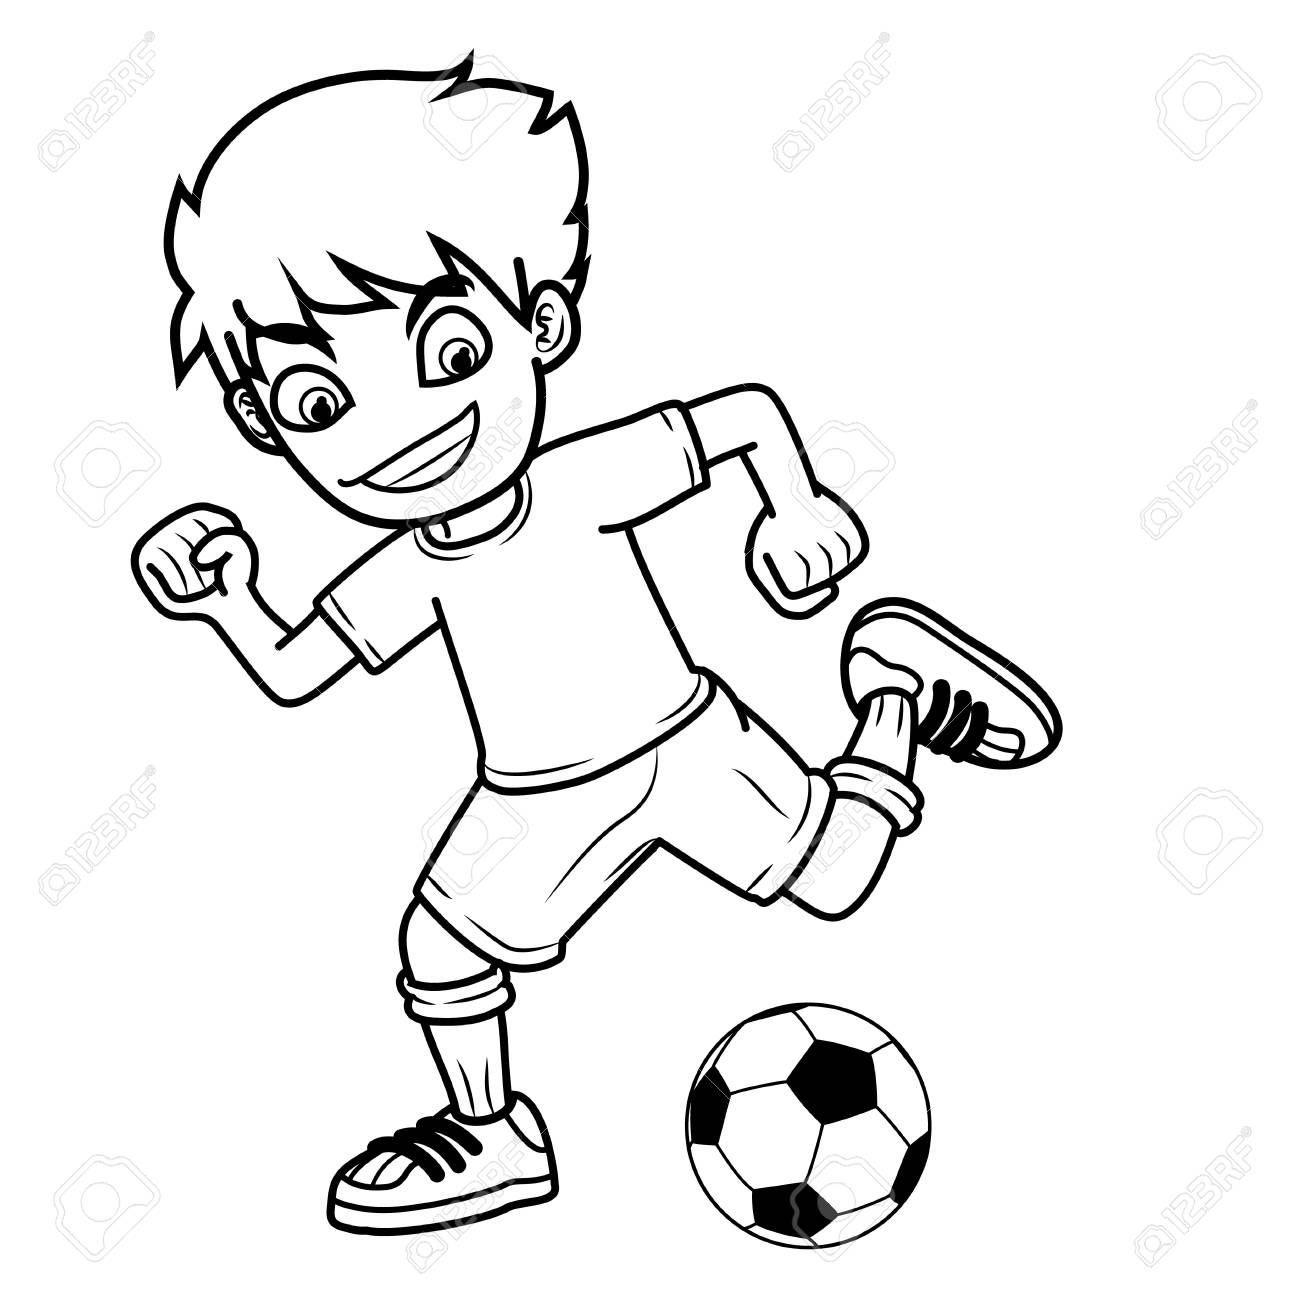 1300x1300 Football Drawing Black And White For Free Download